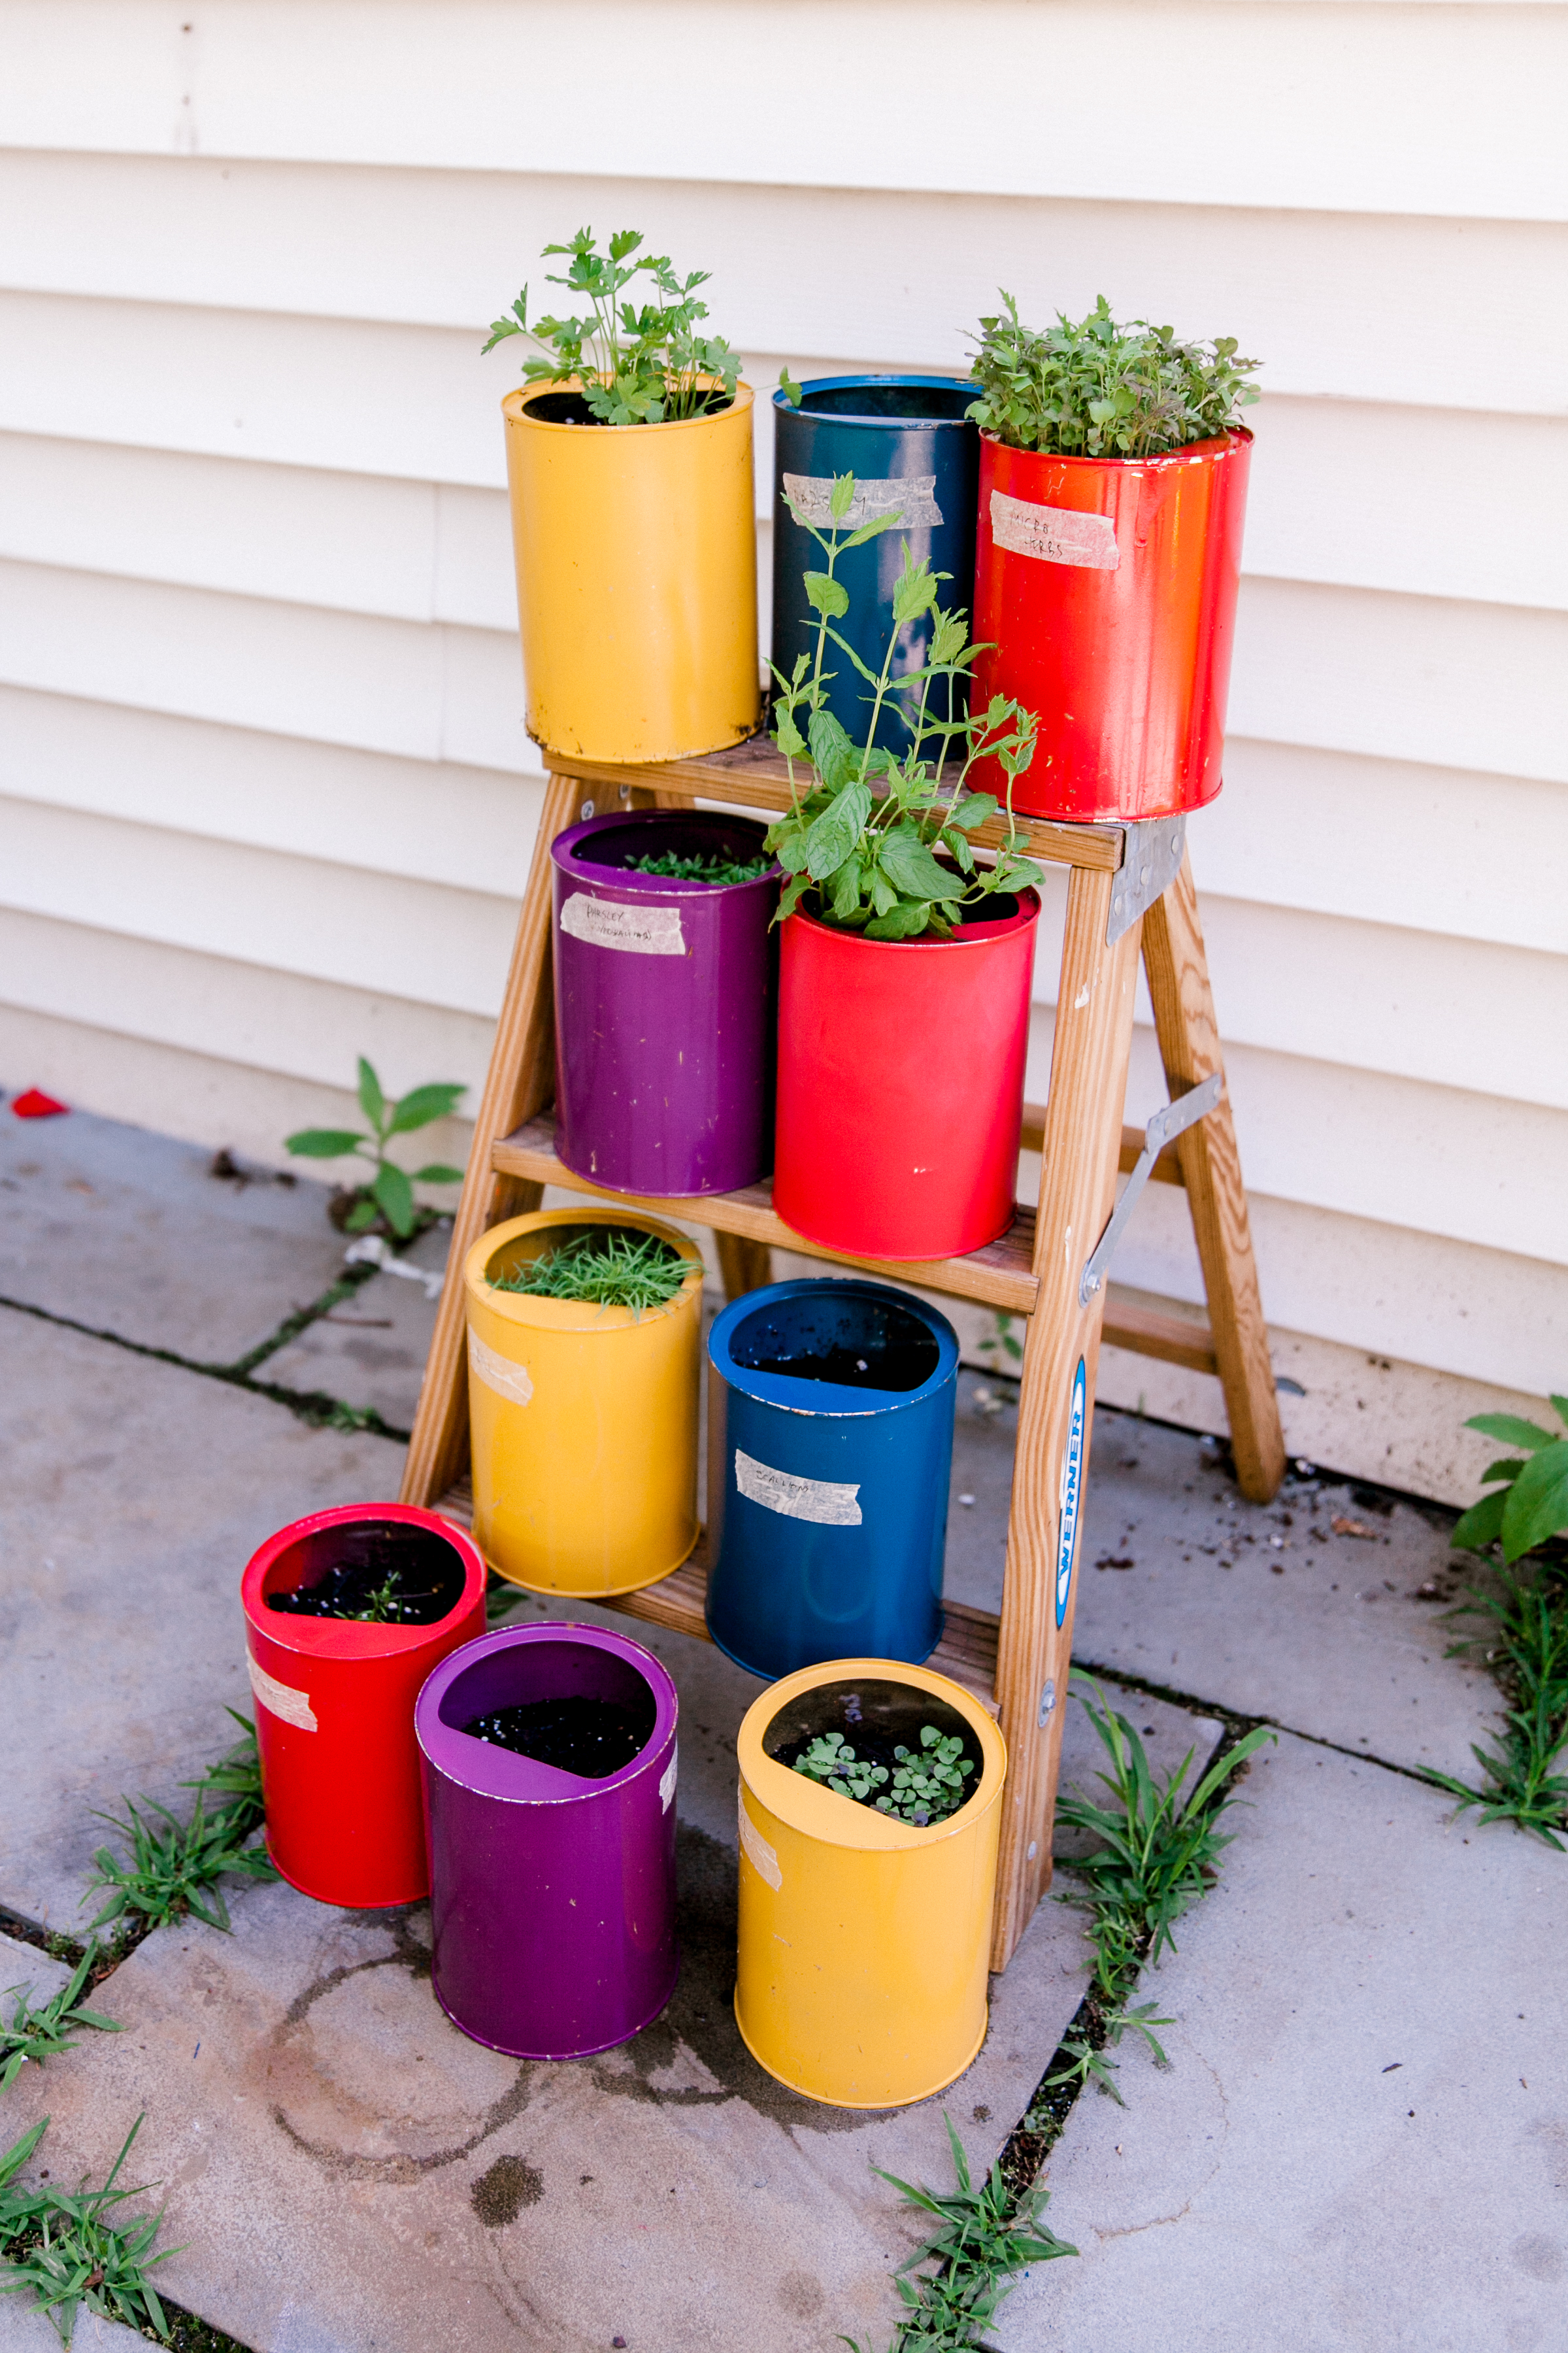 herb garden from formula cans